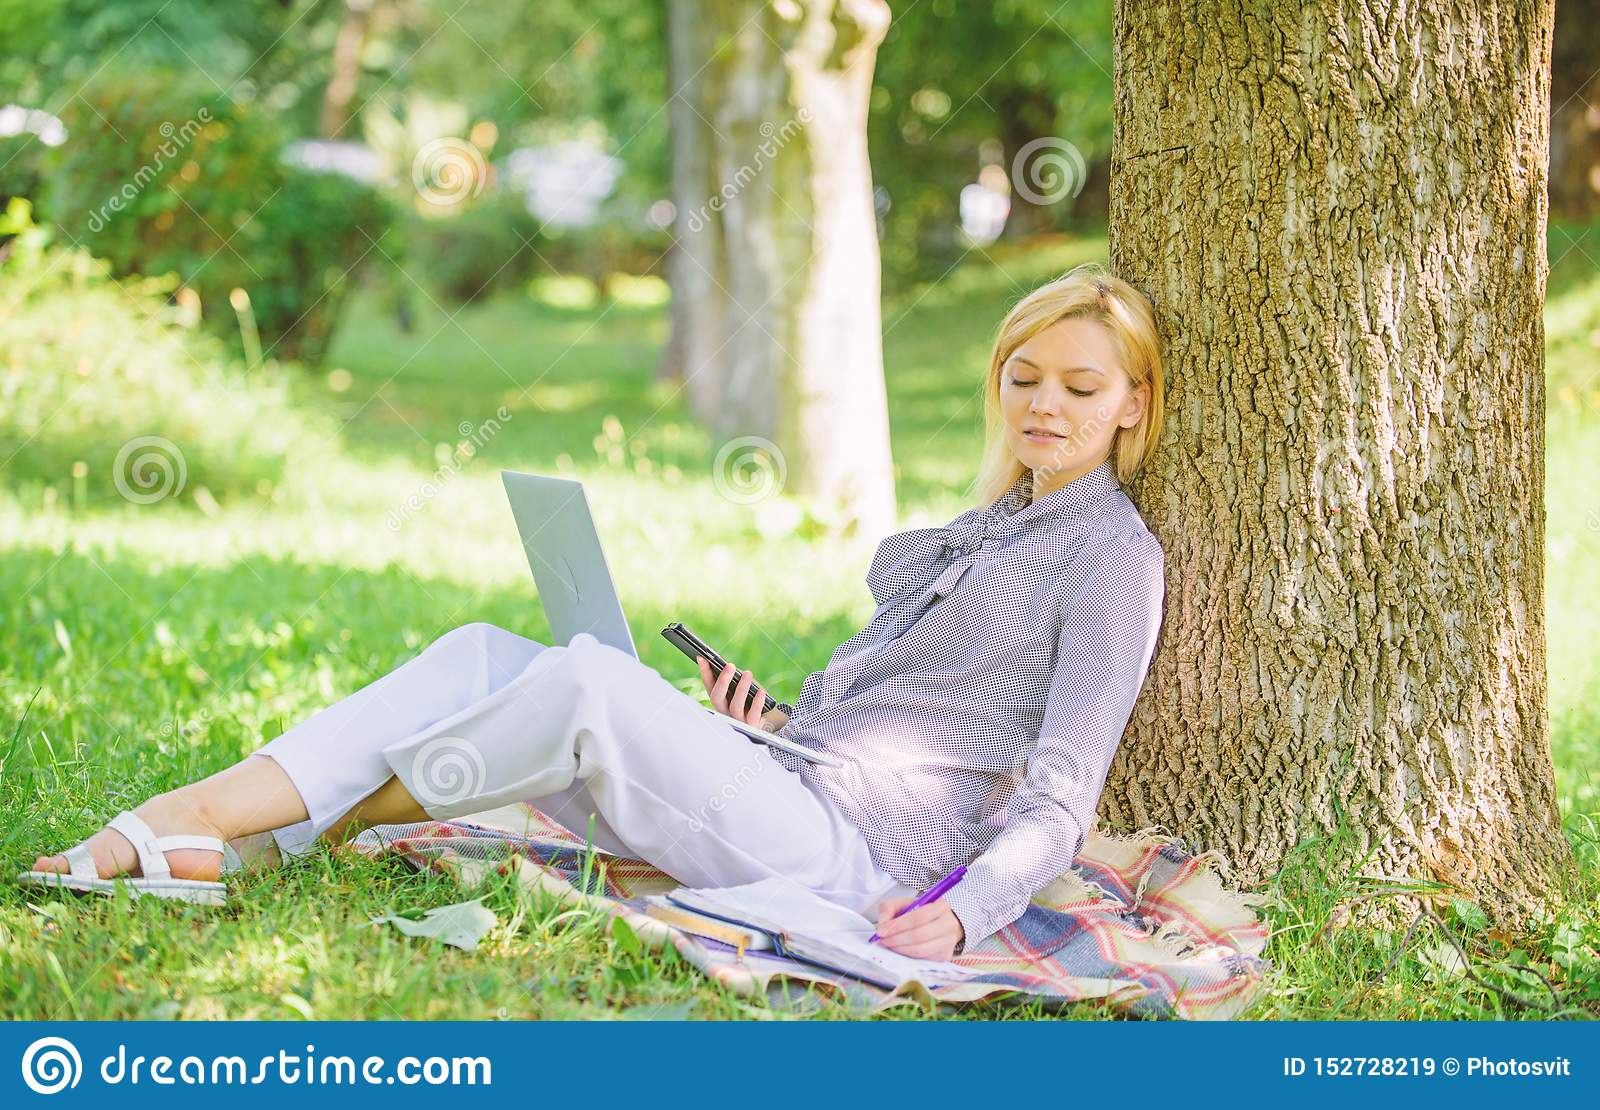 Woman with laptop computer work outdoors lean on tree trunk. Girl work with laptop in park sit on grass. Natural